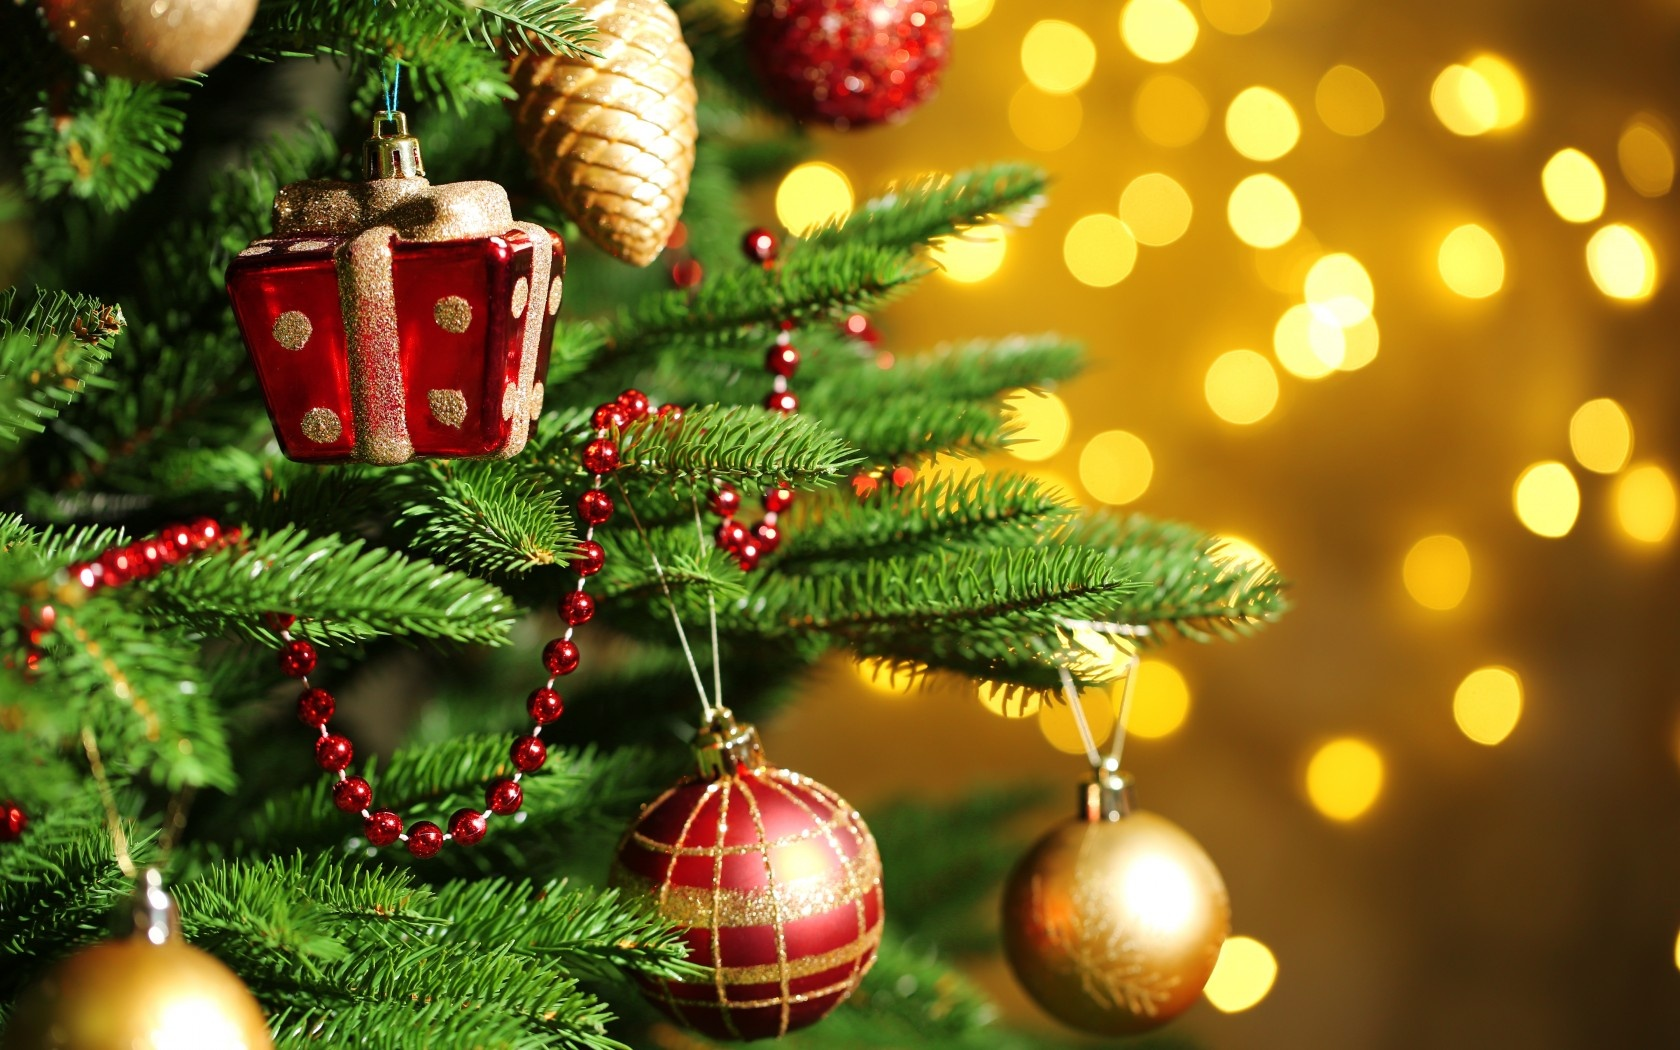 merry christmas ornaments tree wallpapers - 1680x1050 - 503732